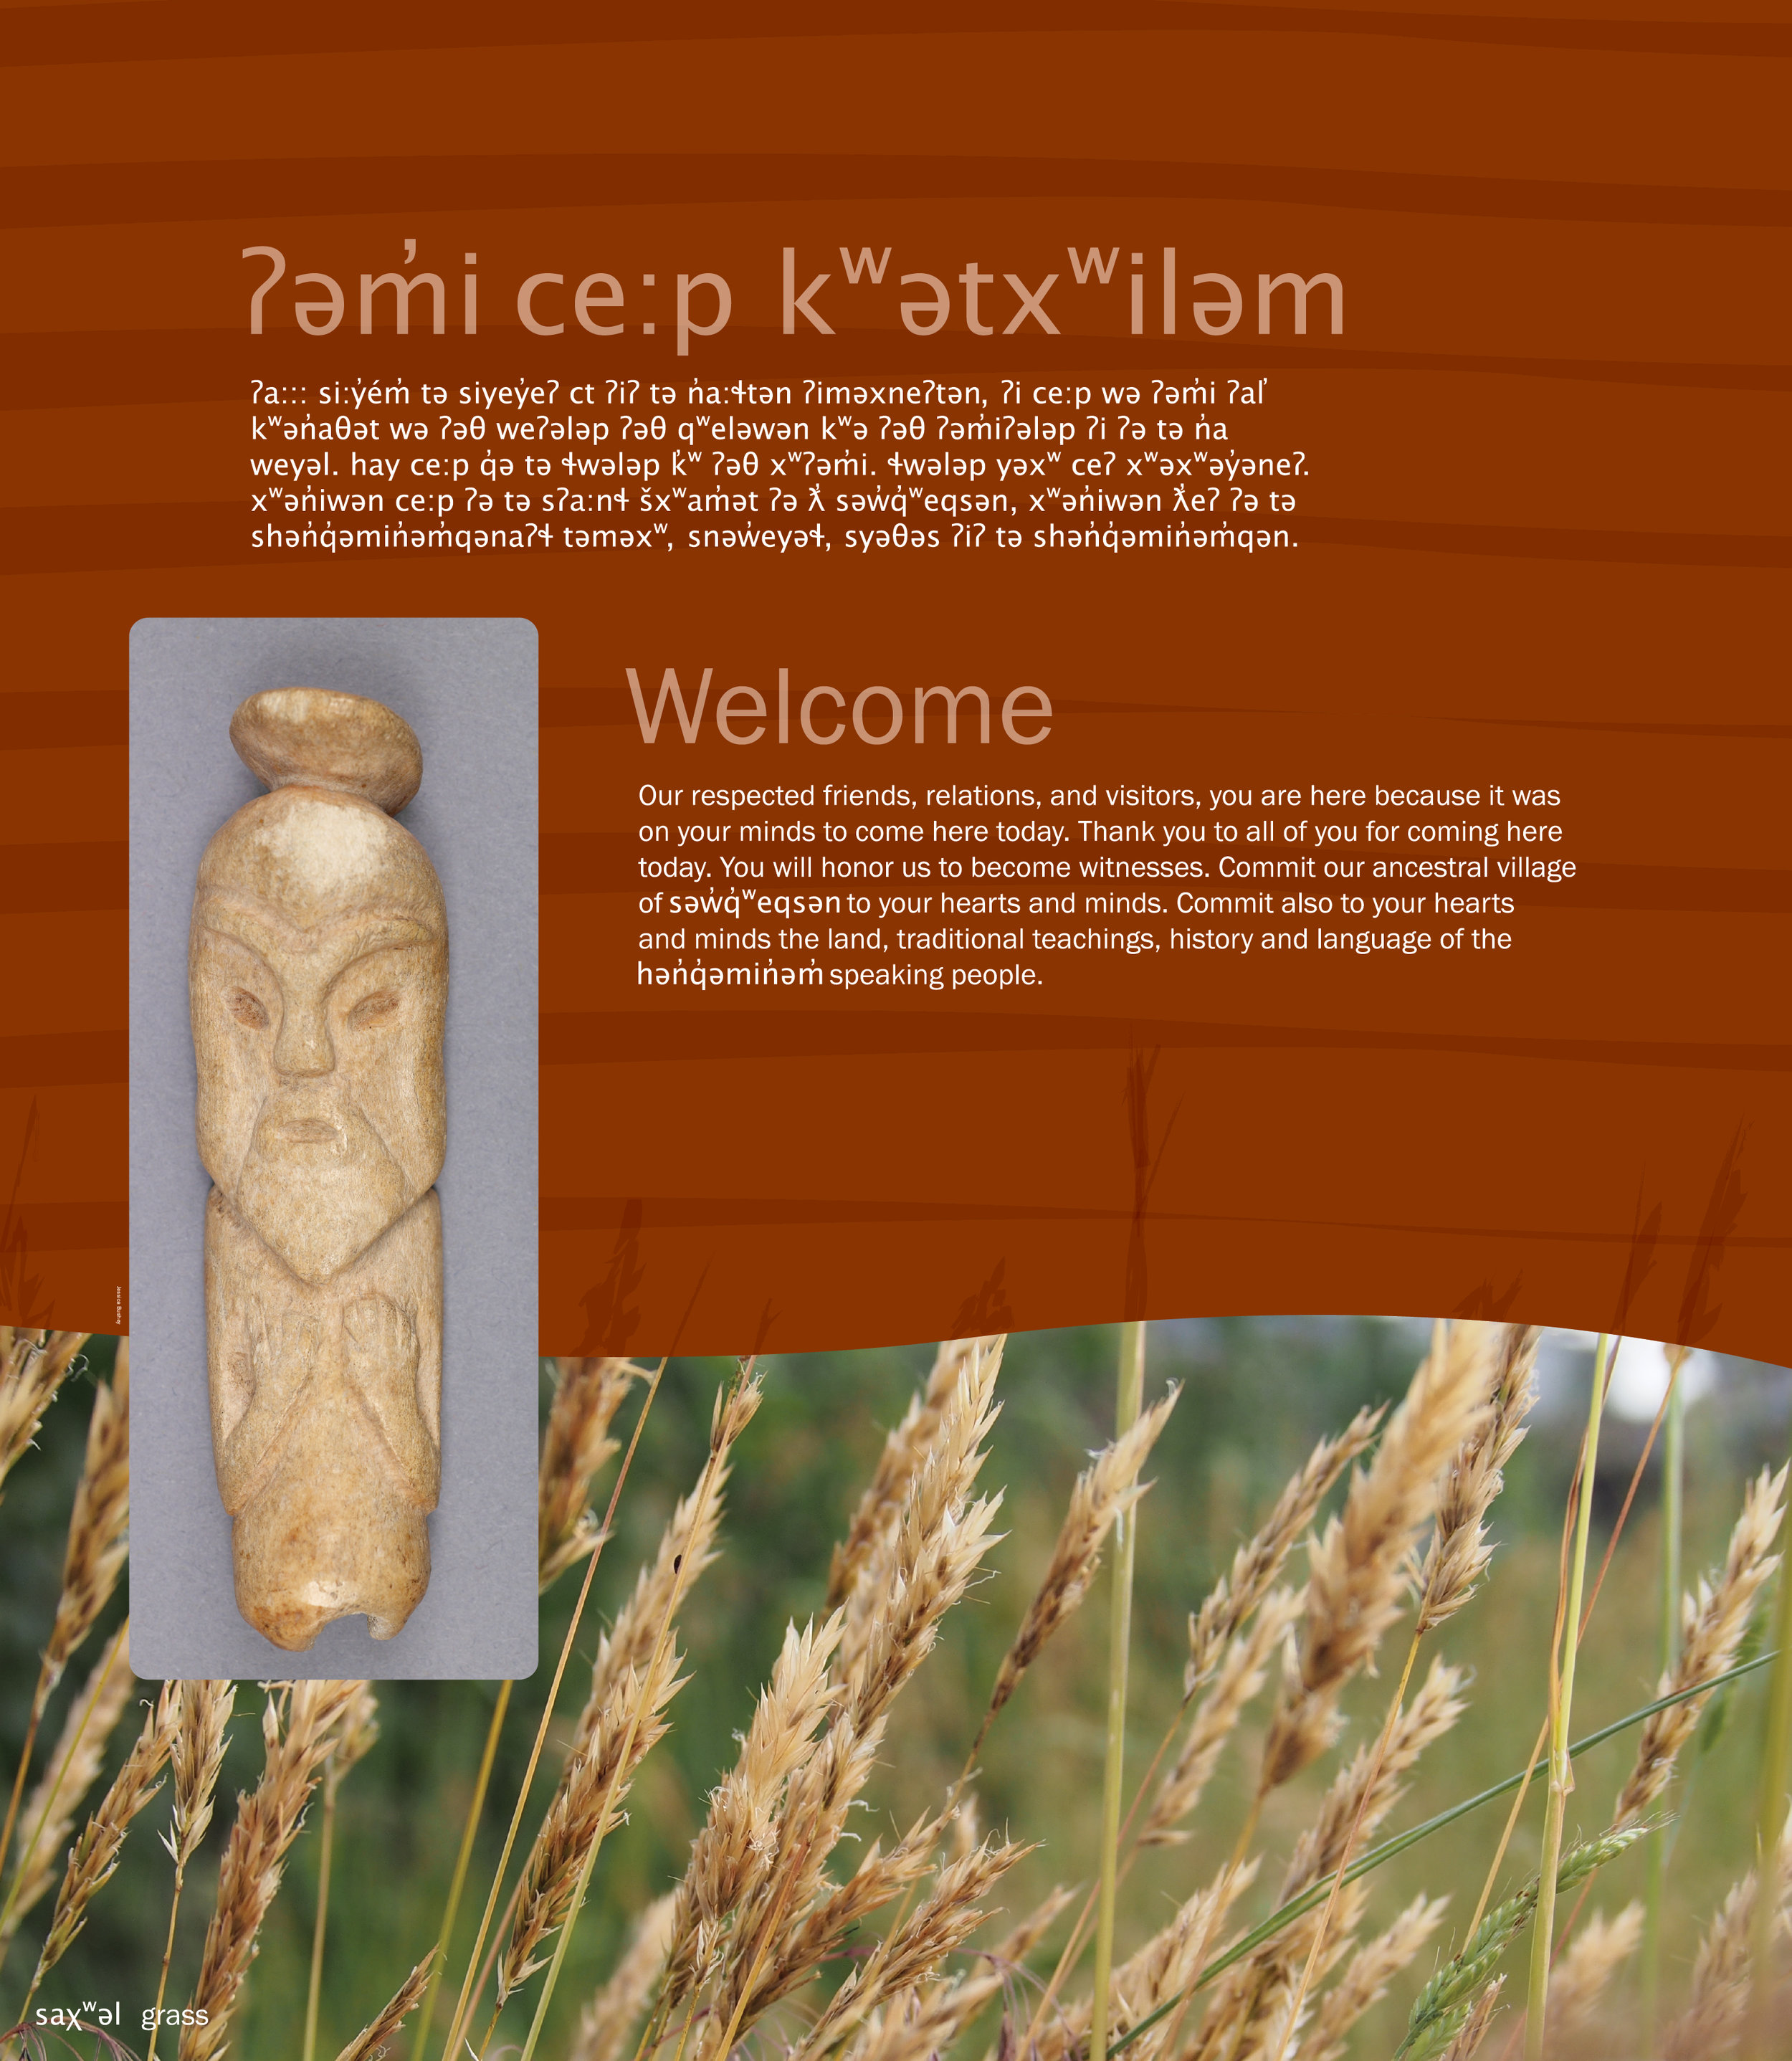 interpretive Signage:  South Fraser Perimeter Recognition Area for Musqueam First Nation